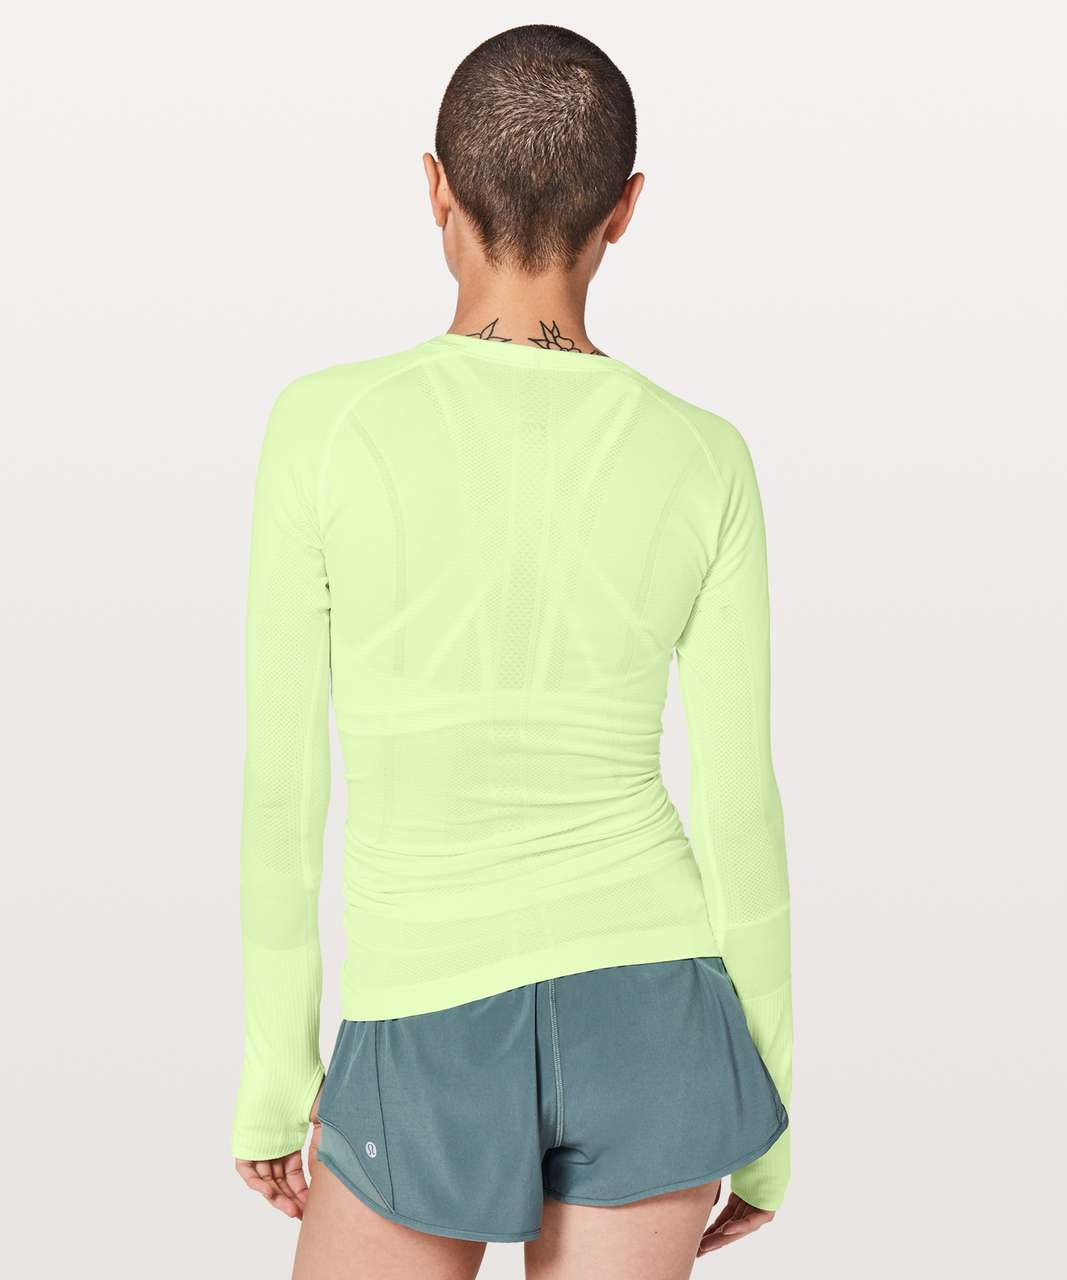 Lululemon Swiftly Tech Long Sleeve Crew - Fluro Citrus / Fluro Citrus